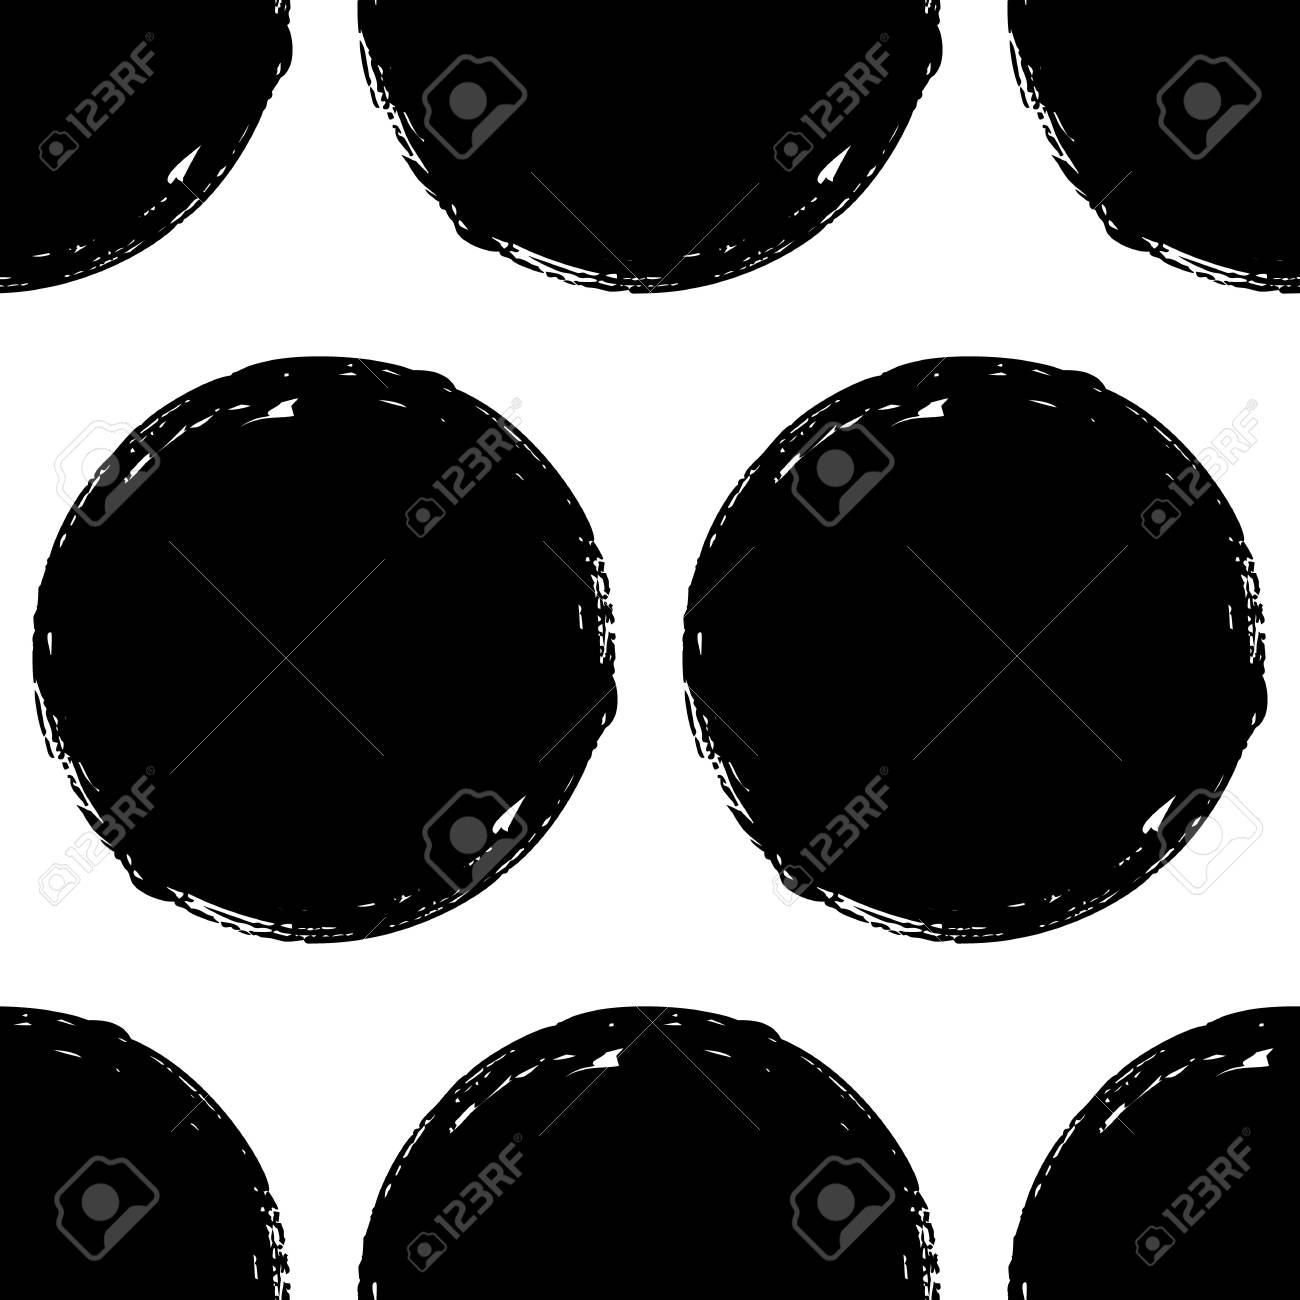 Seamless pattern with grunge circles. Geometric graphic design element. Black white hand painted brush stroke texture. Hand drawn round shapes background. Vector illustration - 92950720